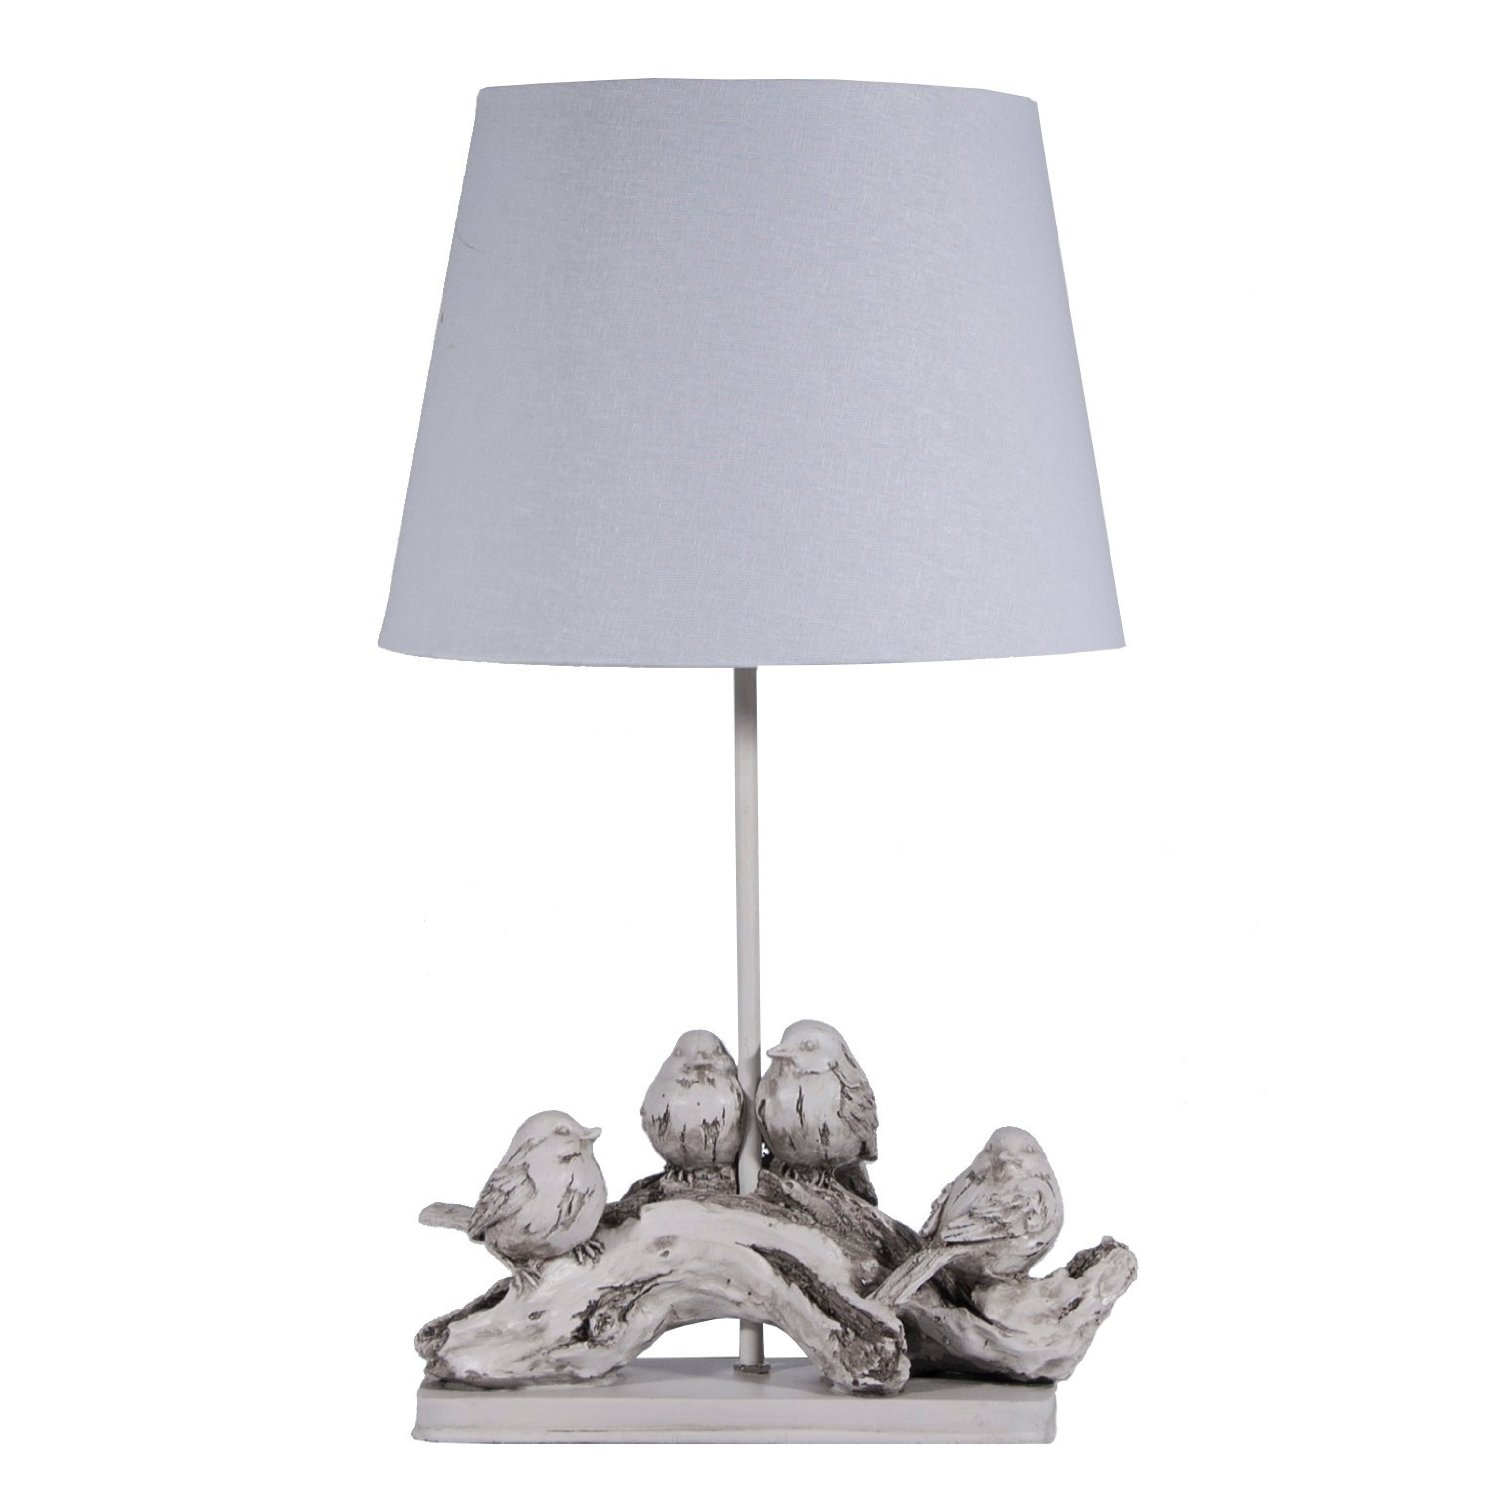 shebby-chic-lamp-accsrs16